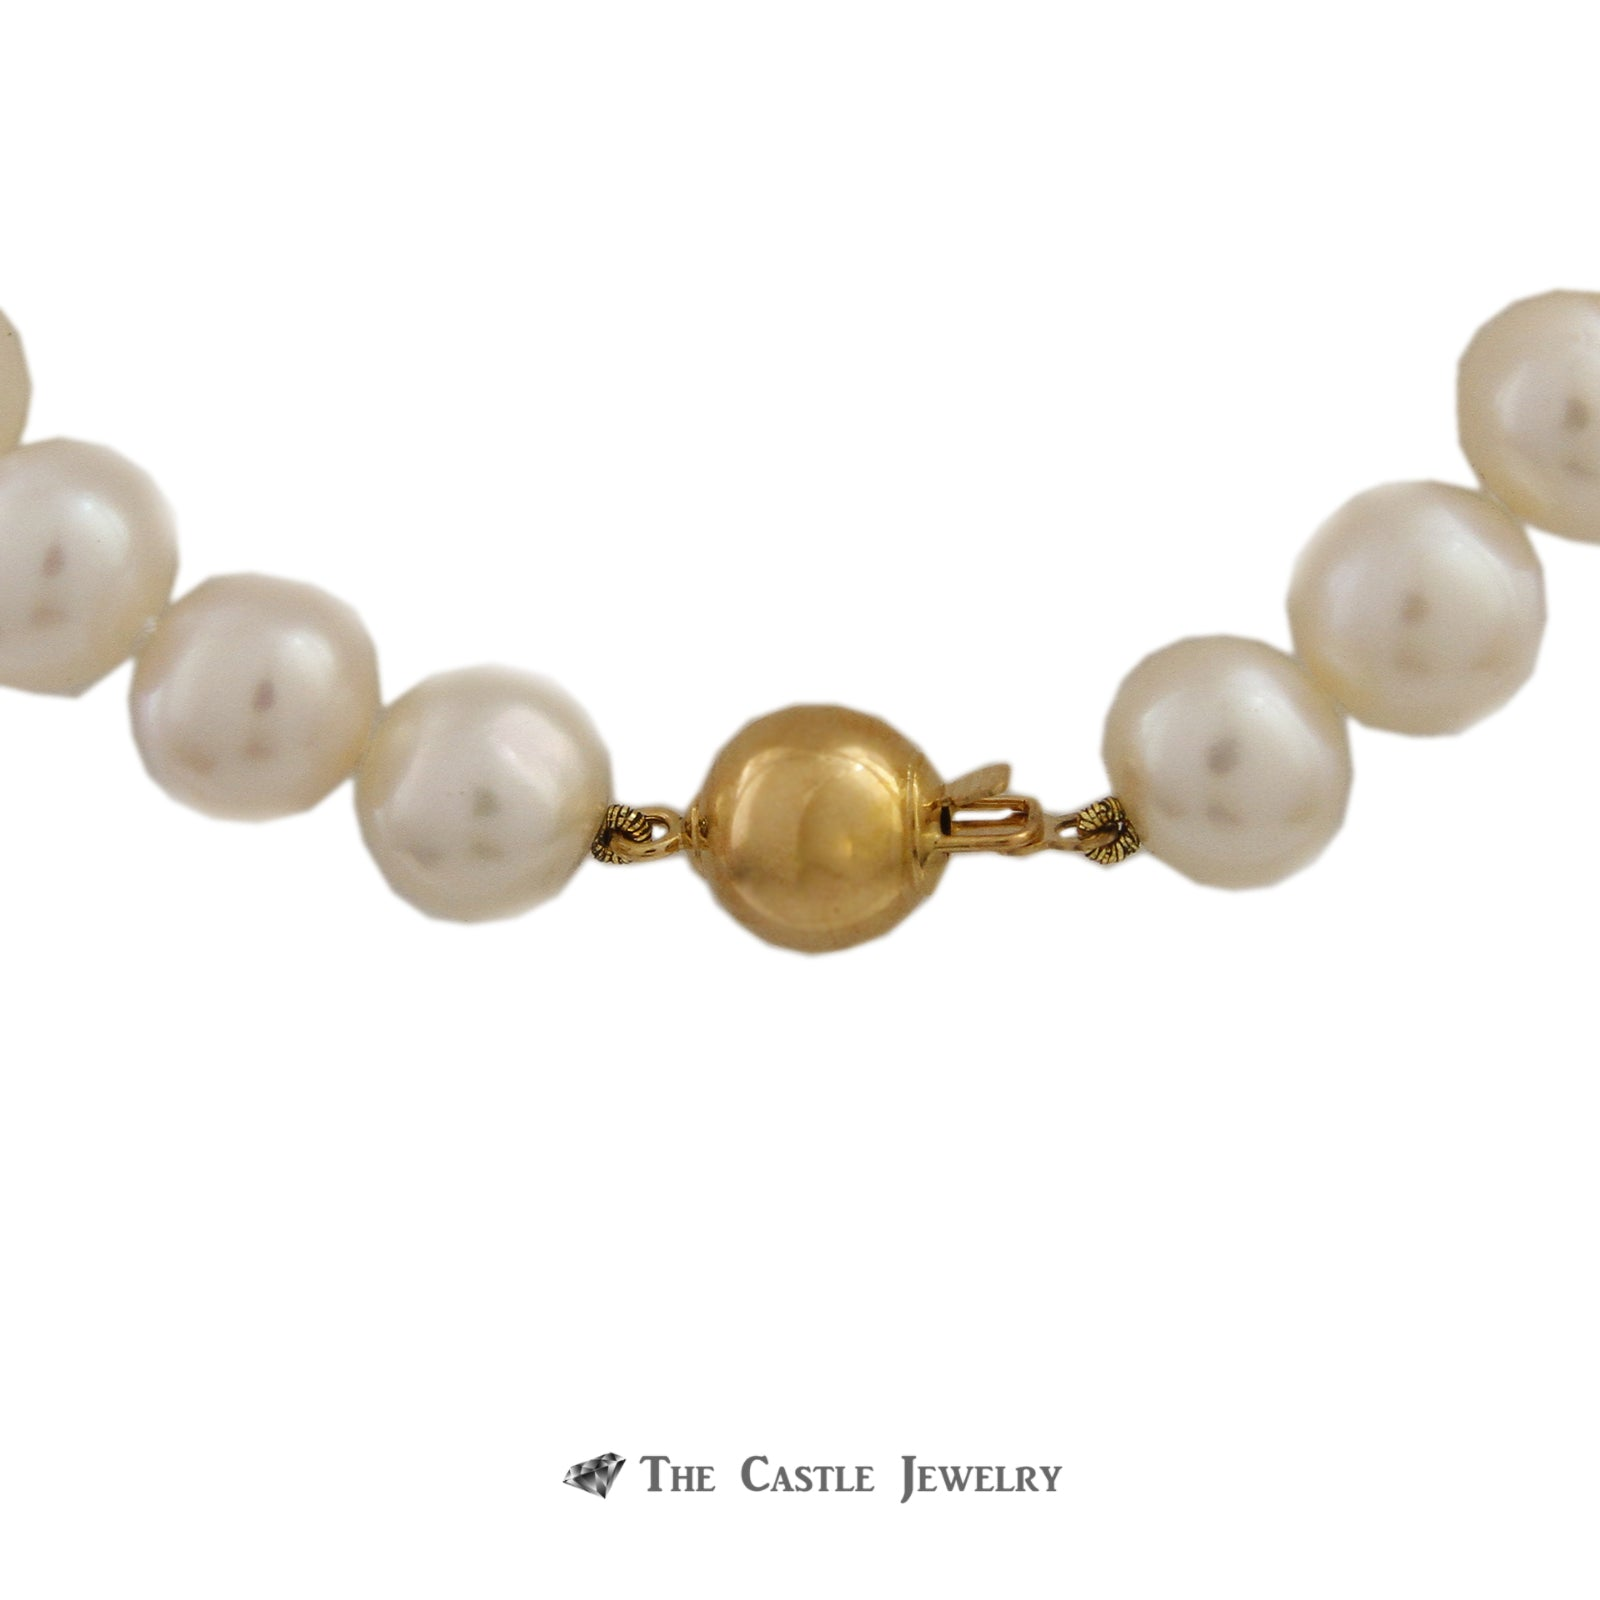 Pearl Necklace with 8.5-9mm Pearls 18 Inches w/ 14K Yellow Gold Clasp-1